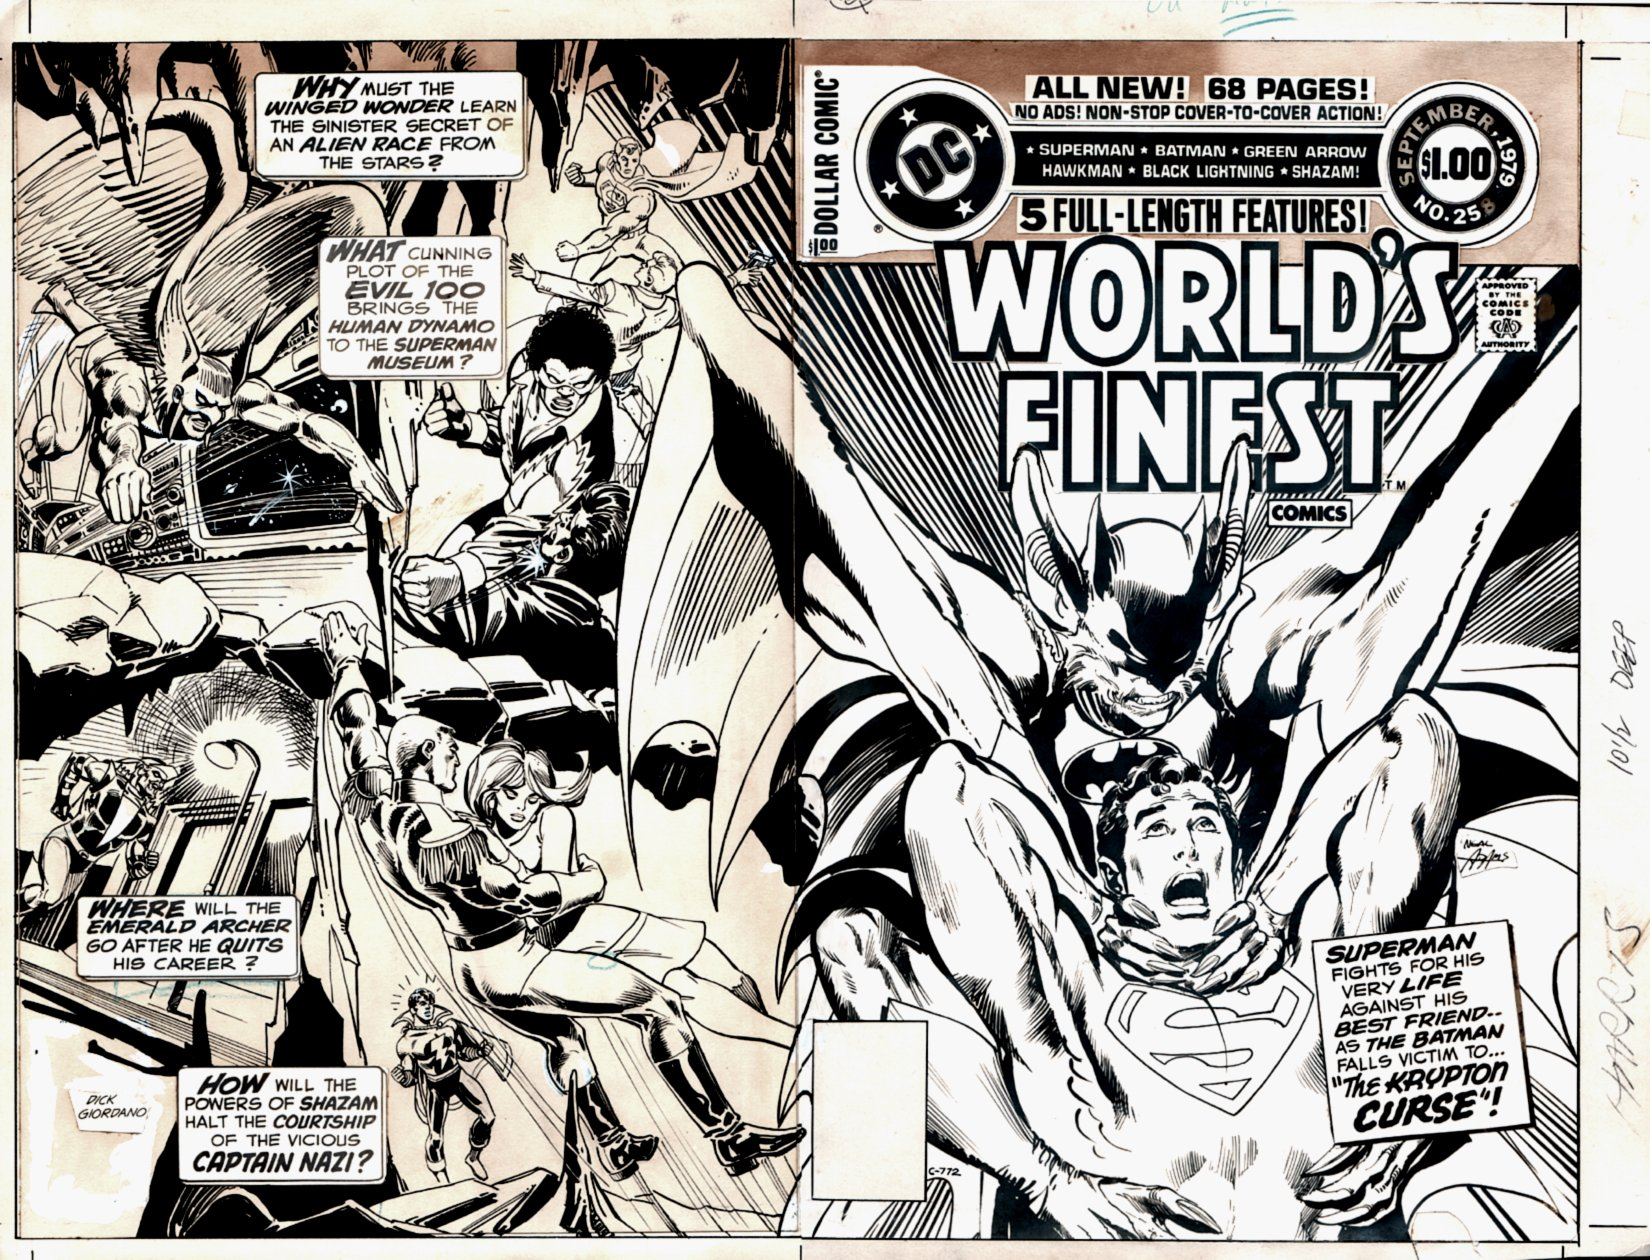 World's Finest Comics #258 Cover (Original Back Cover Art, Production Stat Front Cover, All On 1 Large Board!) 1979